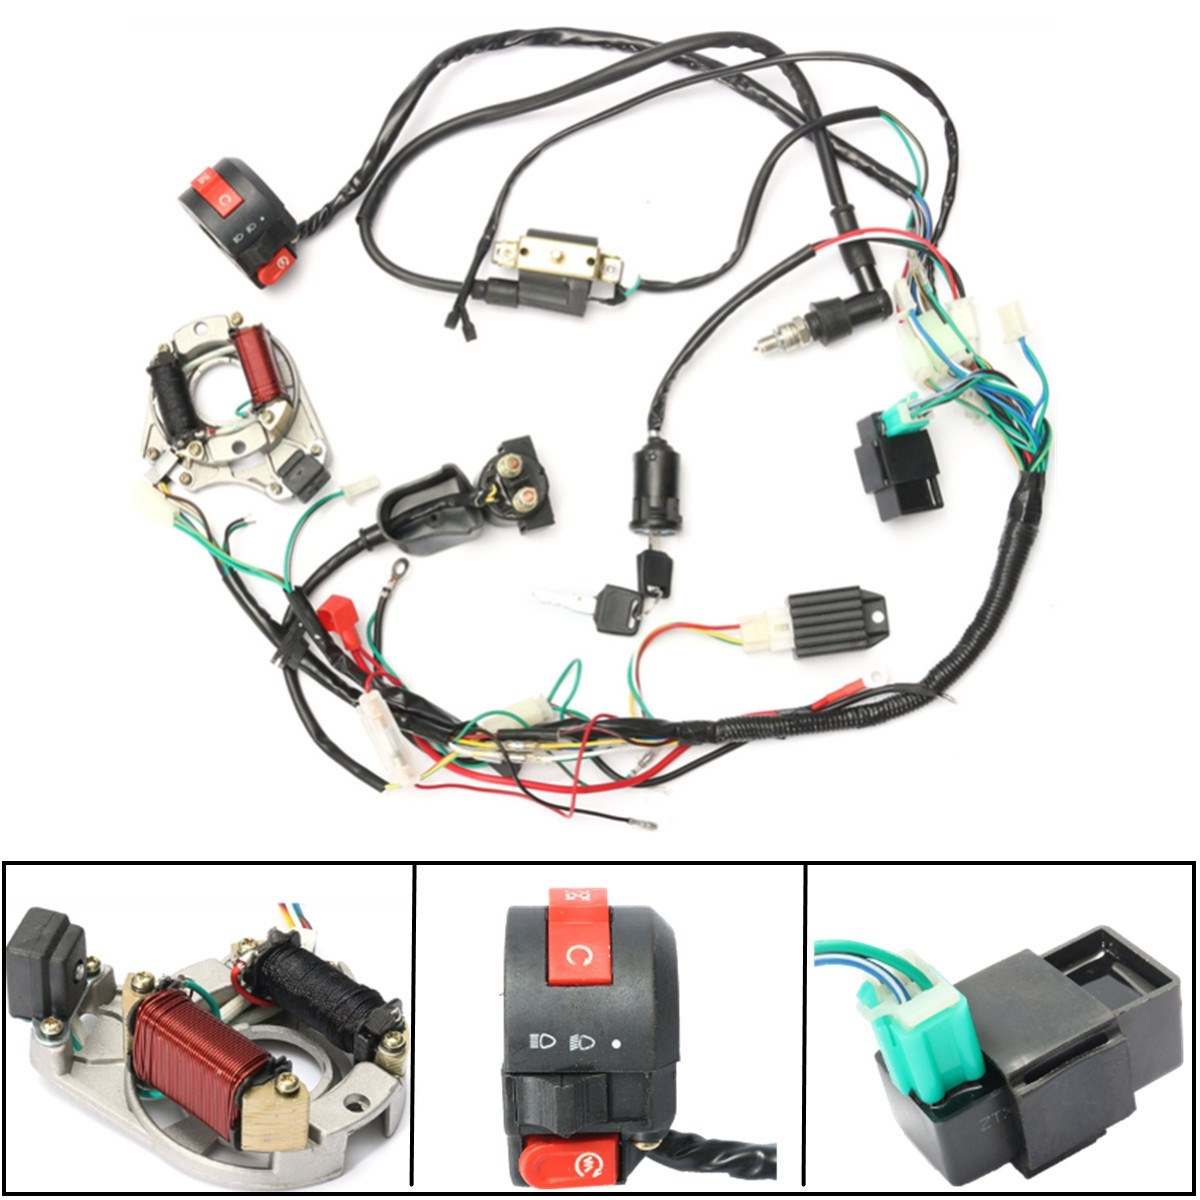 medium resolution of 50 70 90 110cc cdi wire harness assembly wiring kit set for atv hanma 110 atv wiring diagram 110 atv wiring harness